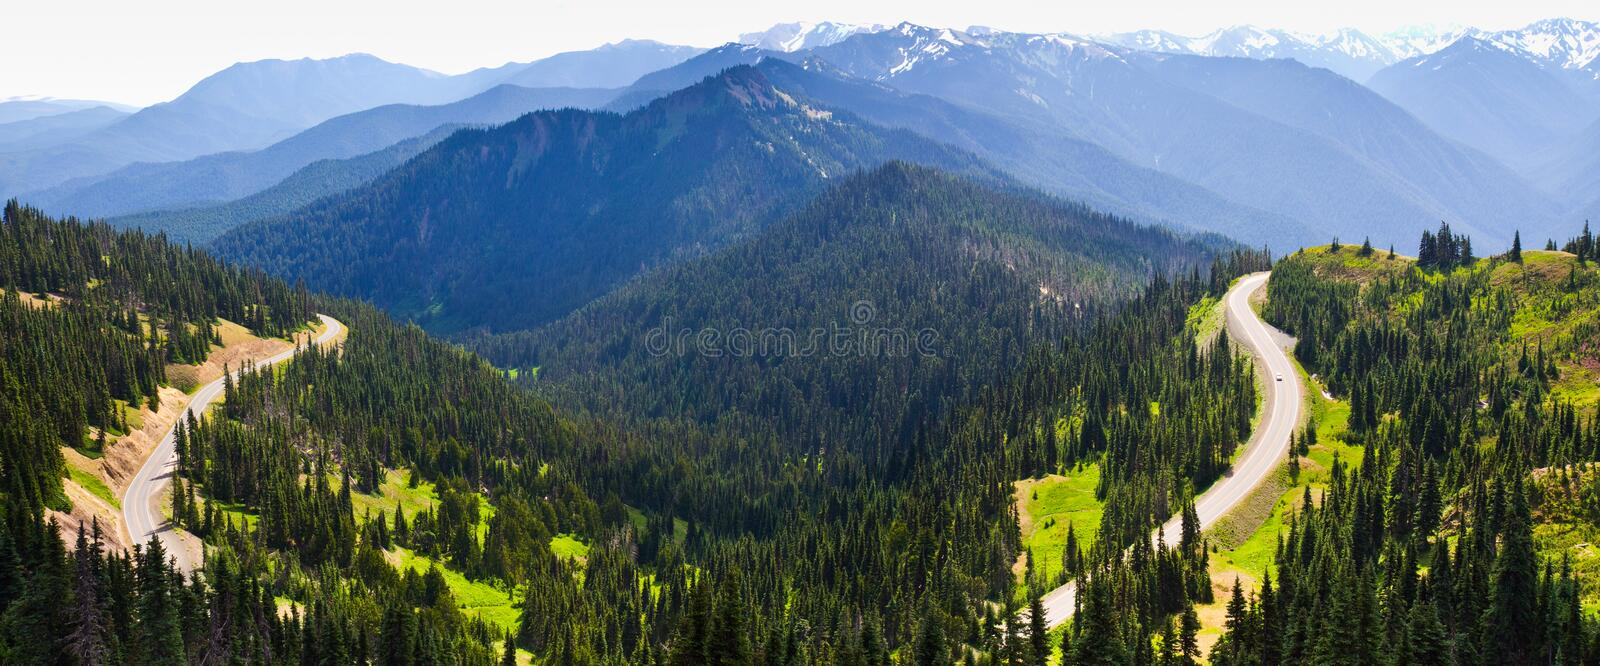 Mountains and winding road, Olympic National Park